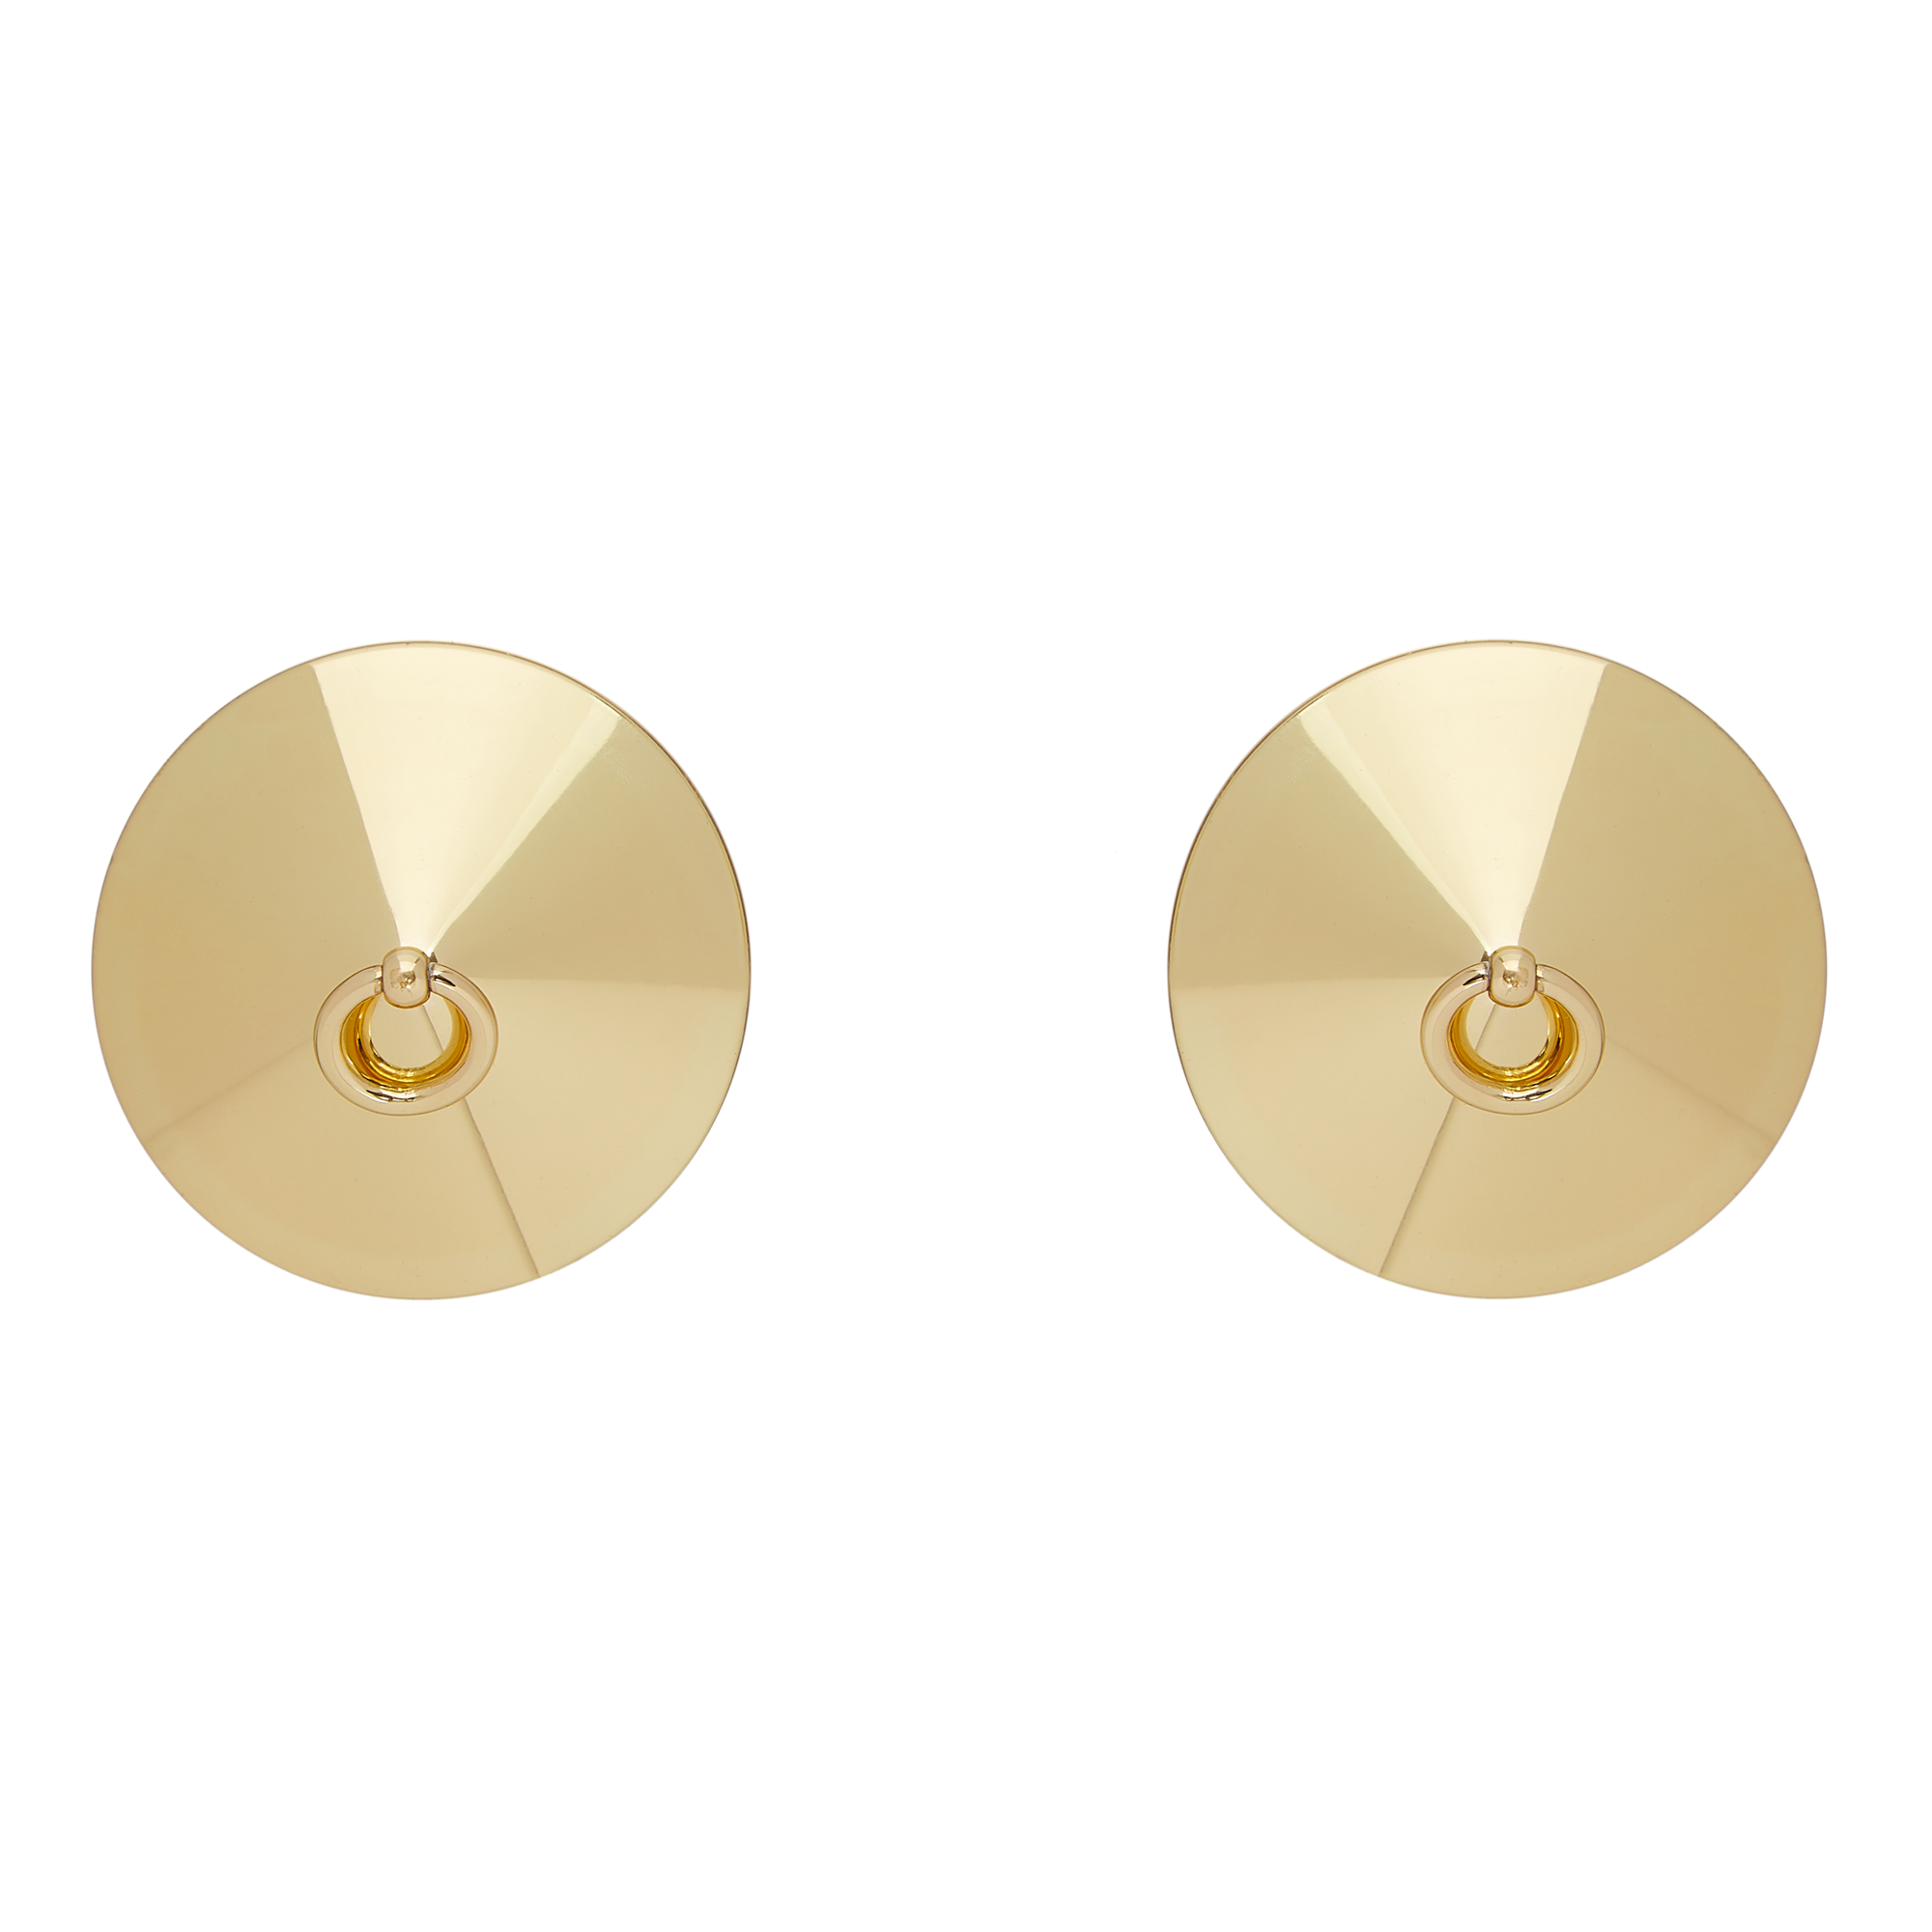 Bordelle 24K Gold plated O ring nipplets